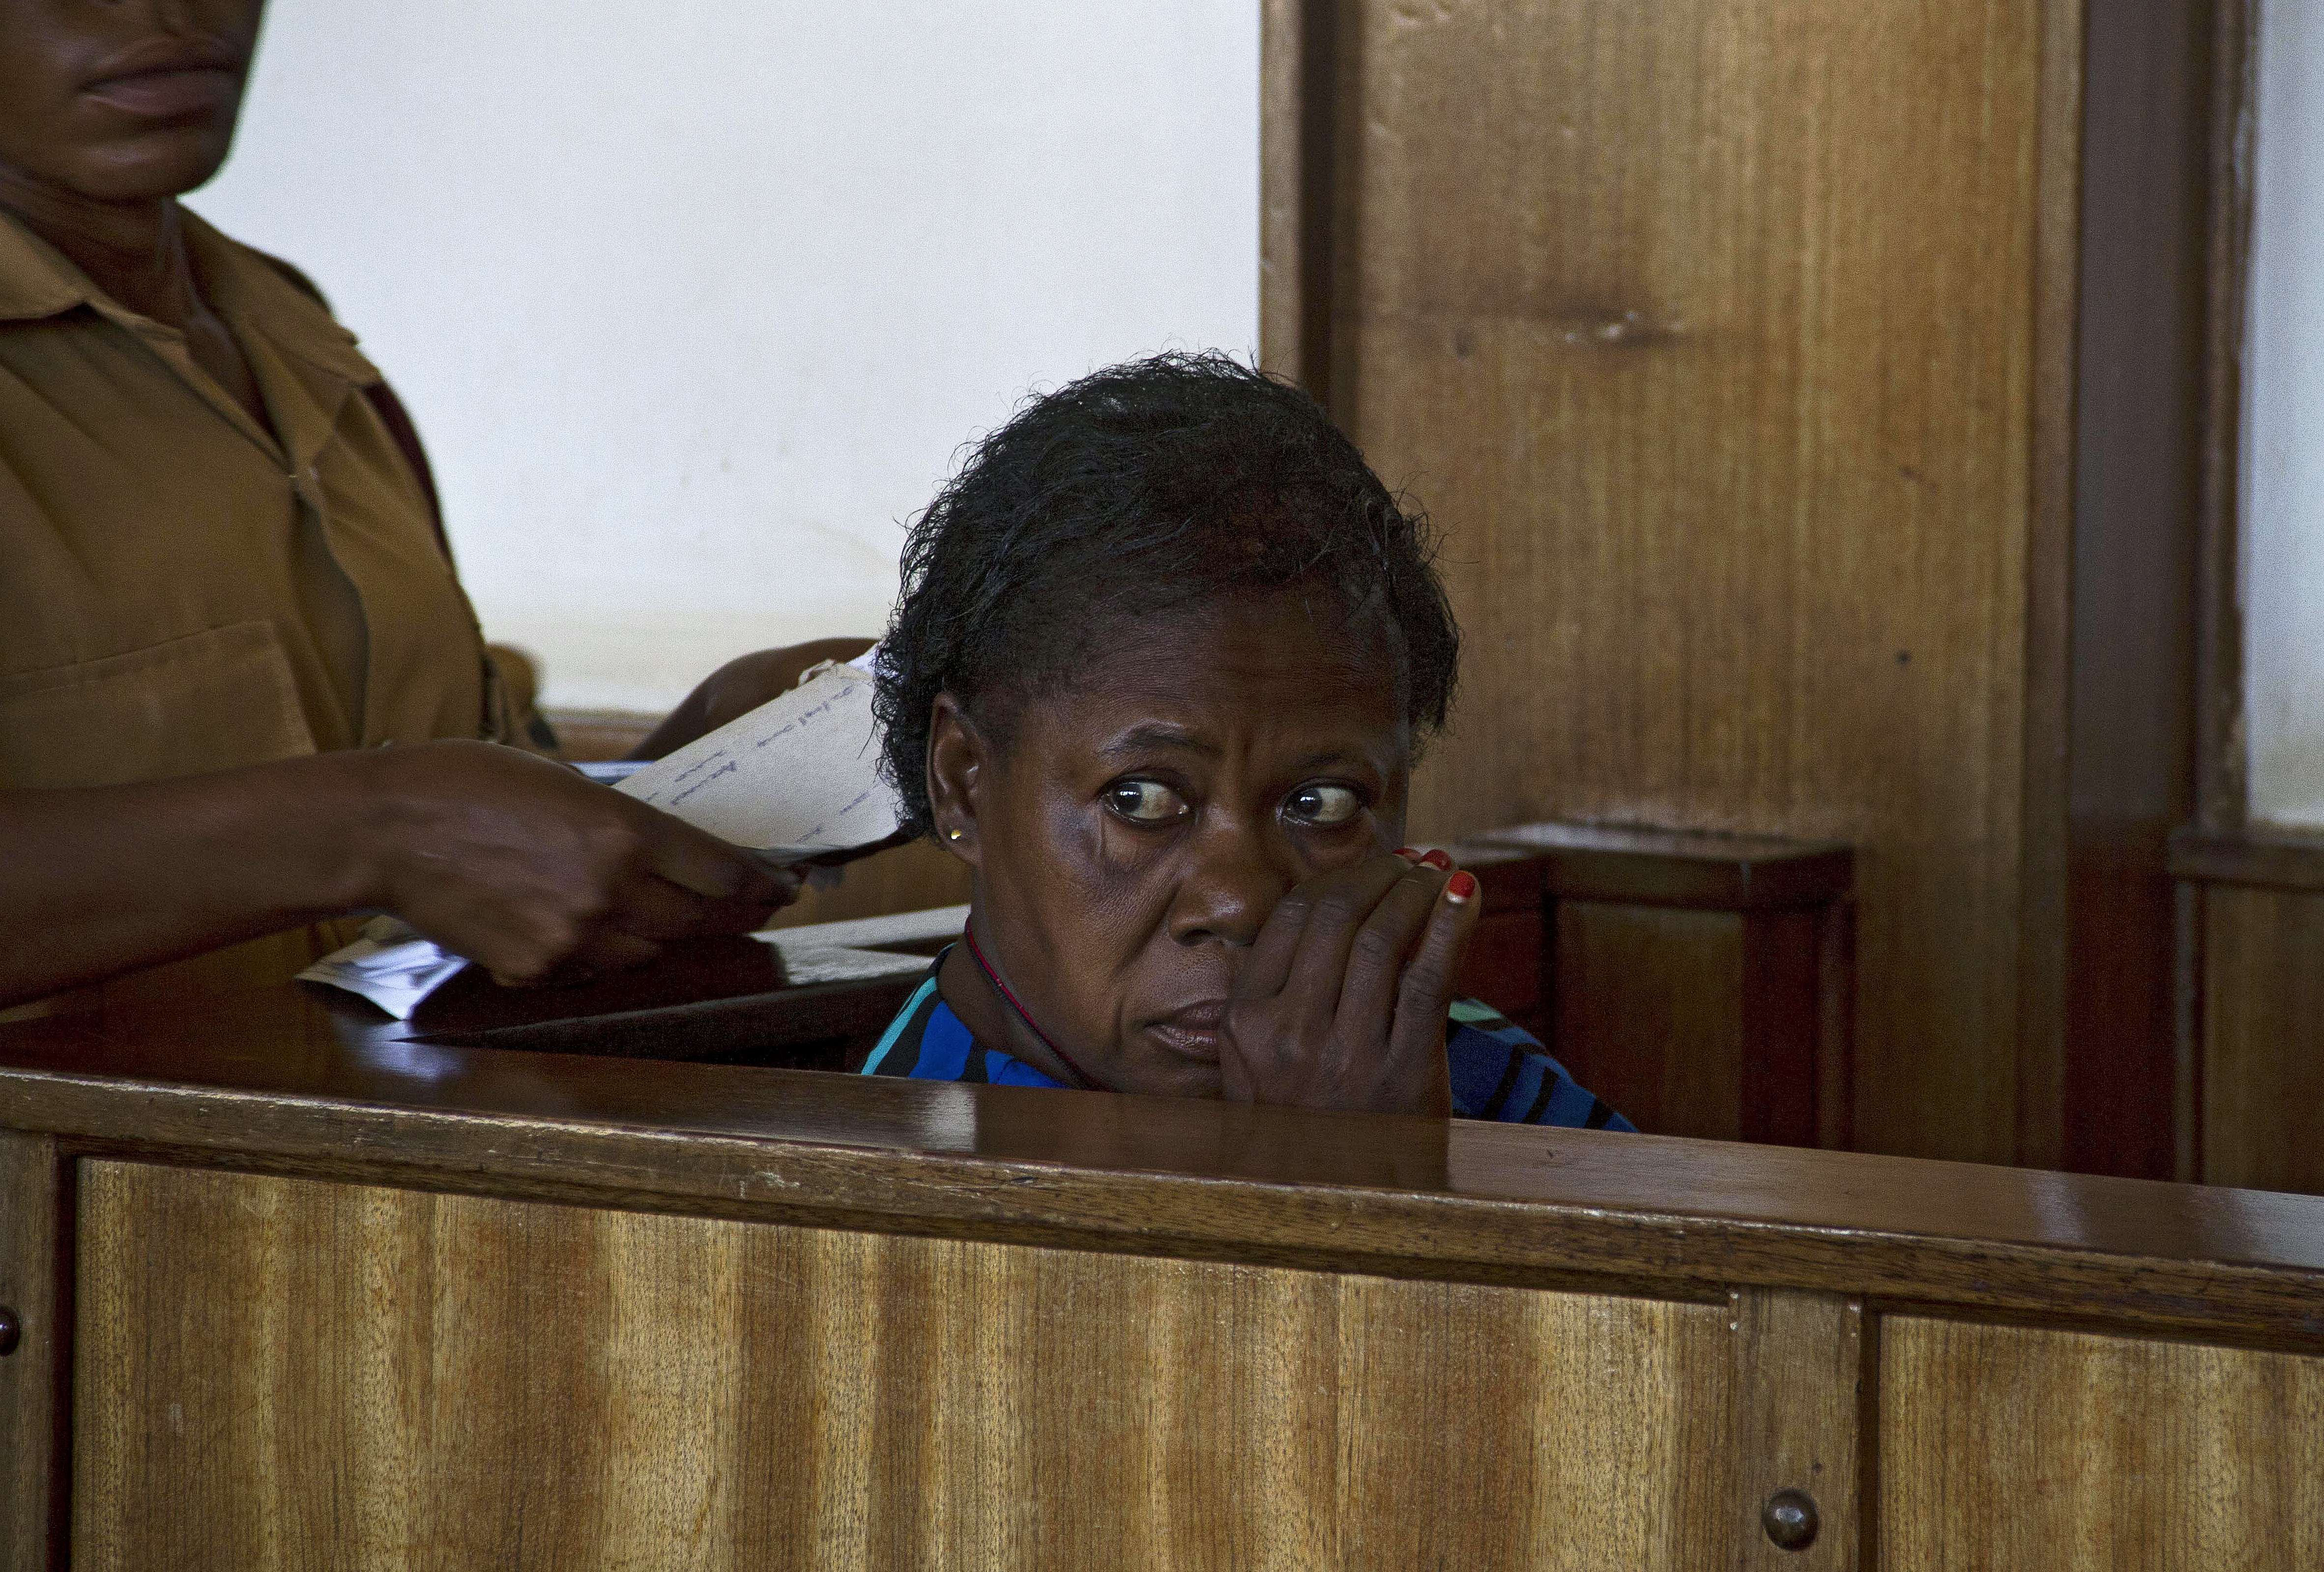 Ugandan nurse Rosemary Namubiru sits at the dock at the Buganda Road Magistrates Court on May 19, 2014 in Kampala during a ruling on a case where she was charged with  Criminal Negligence  and sentenced to 3 years in prison after she was found guilty by the Ugandan court.